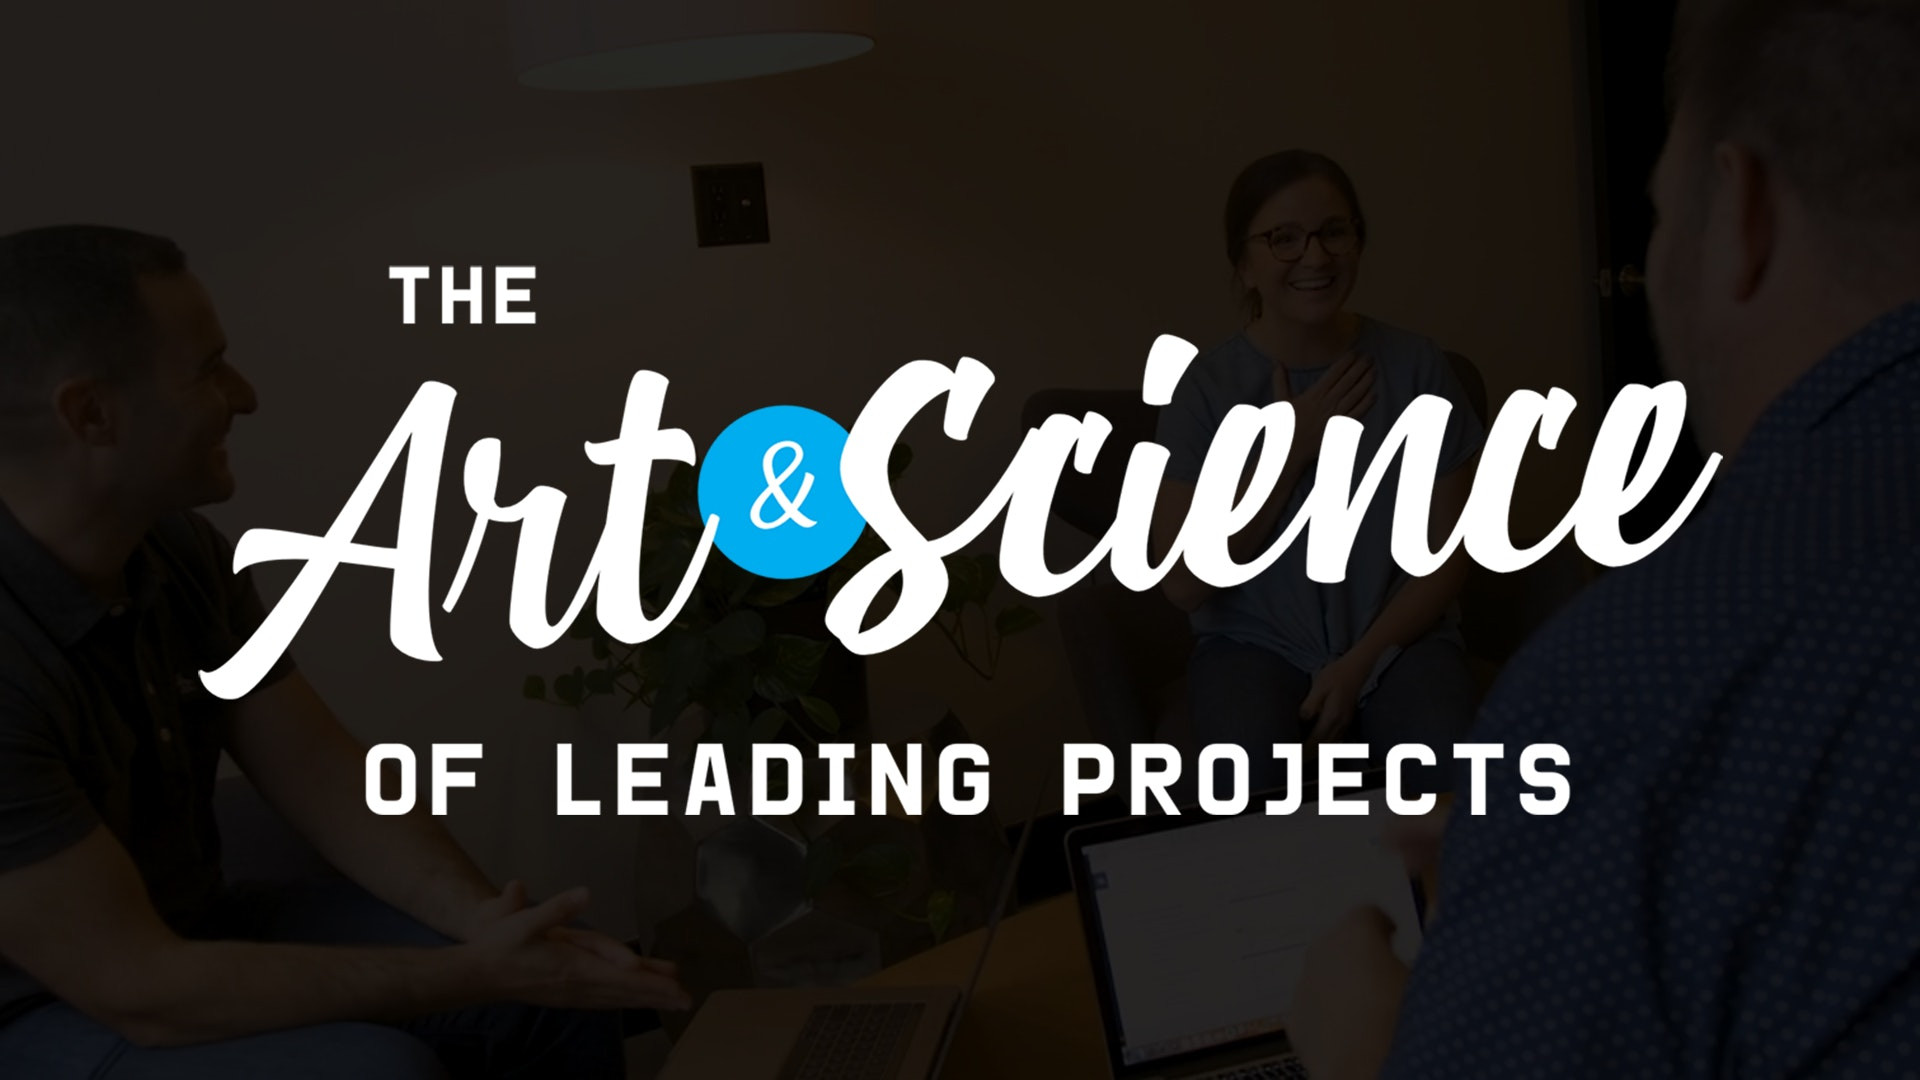 The Art & Science of Leading Projects